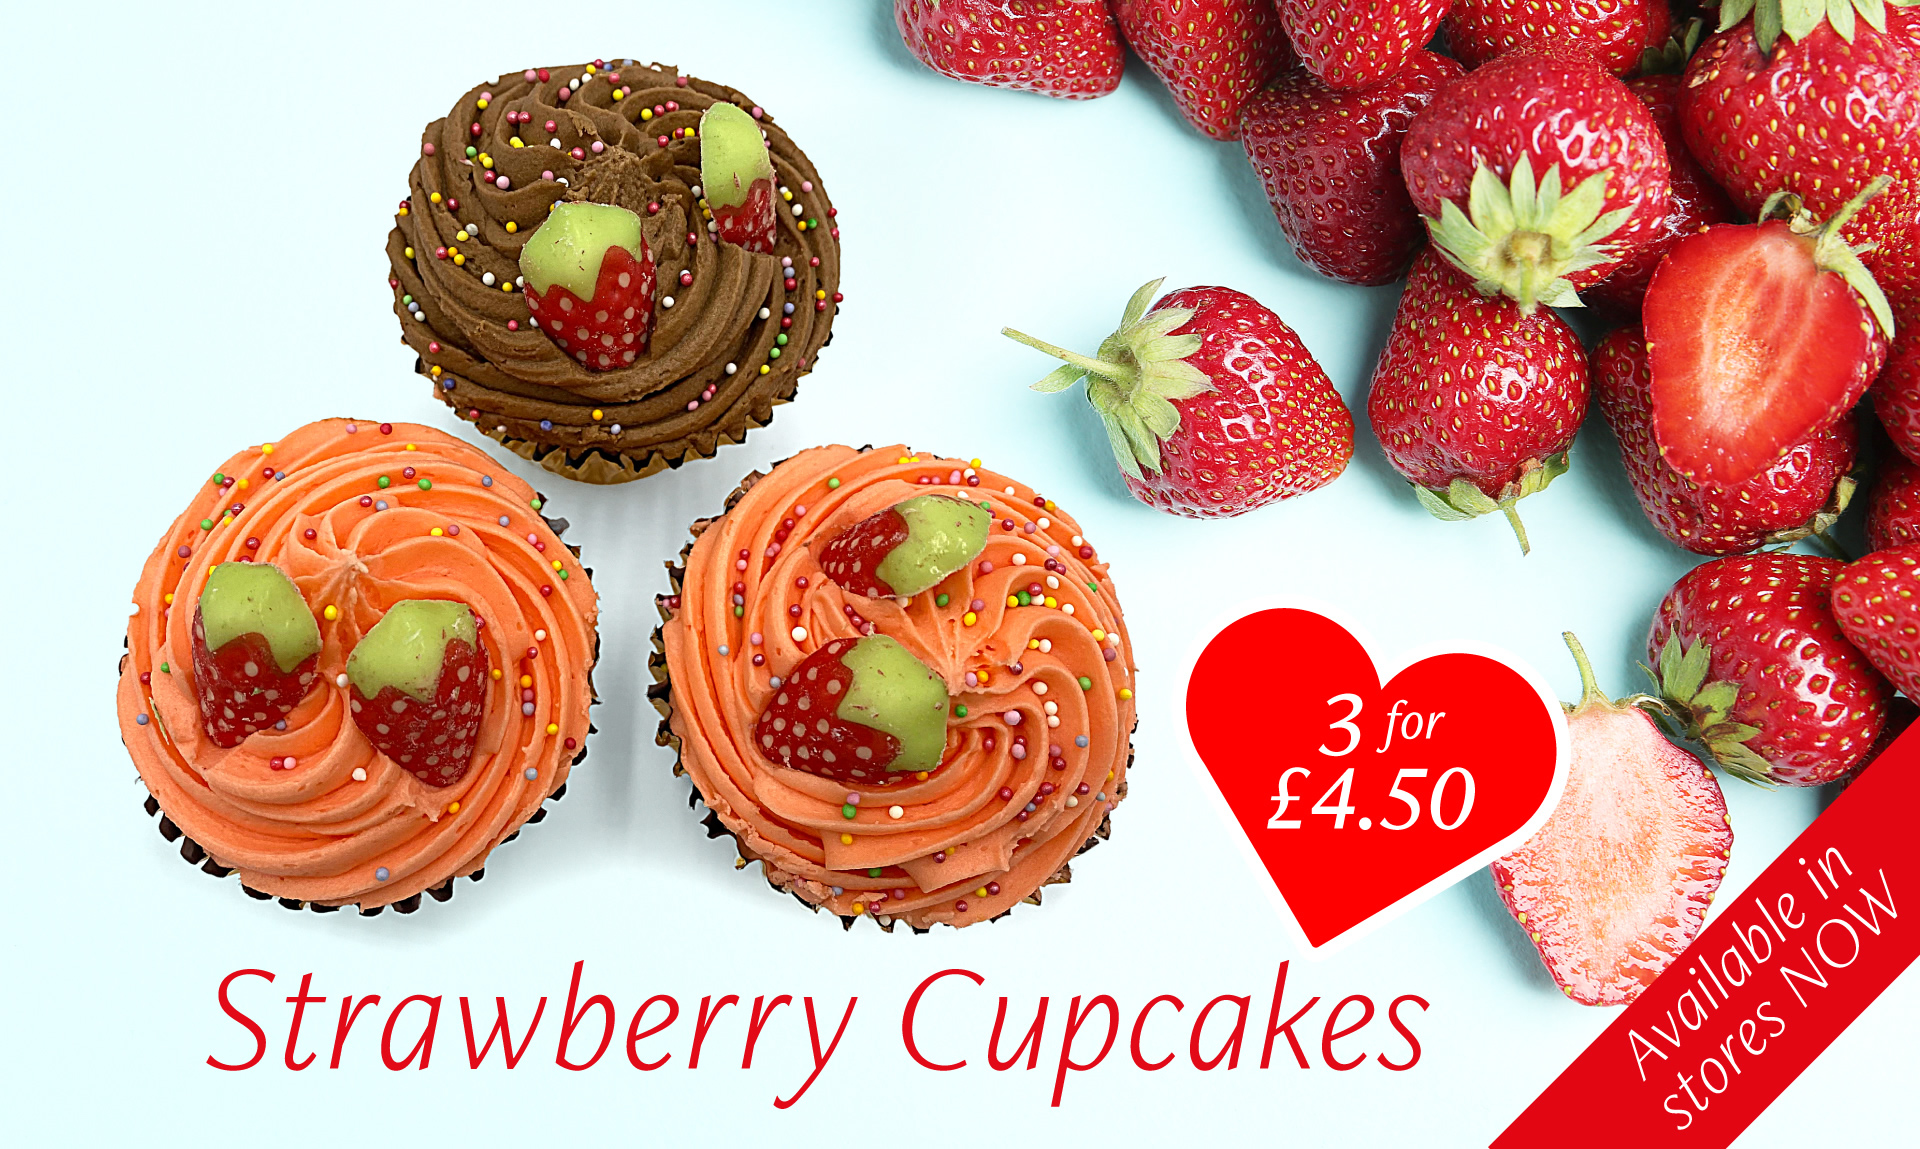 Strawberry Cupcakes available in all stores now, 3 for £4.50